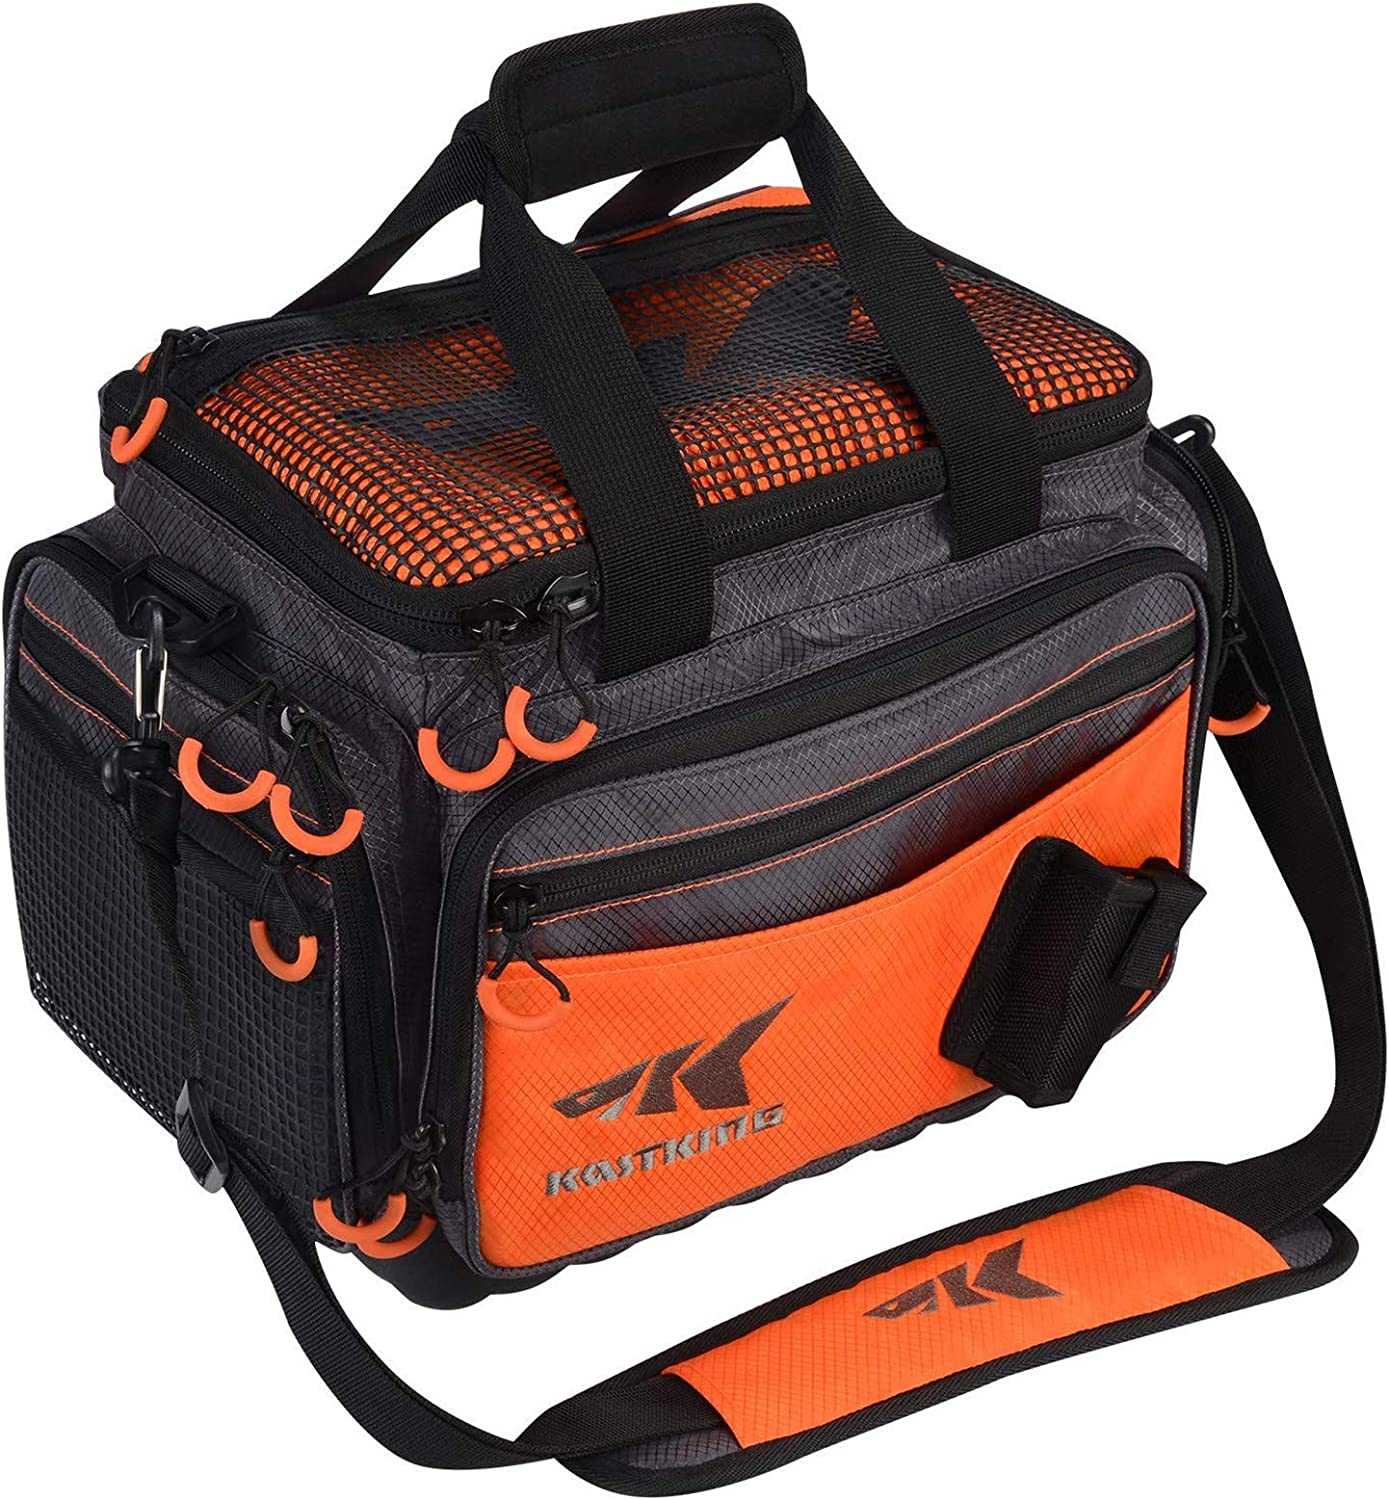 KastKing Large Saltwater Resistant Fishing Bag